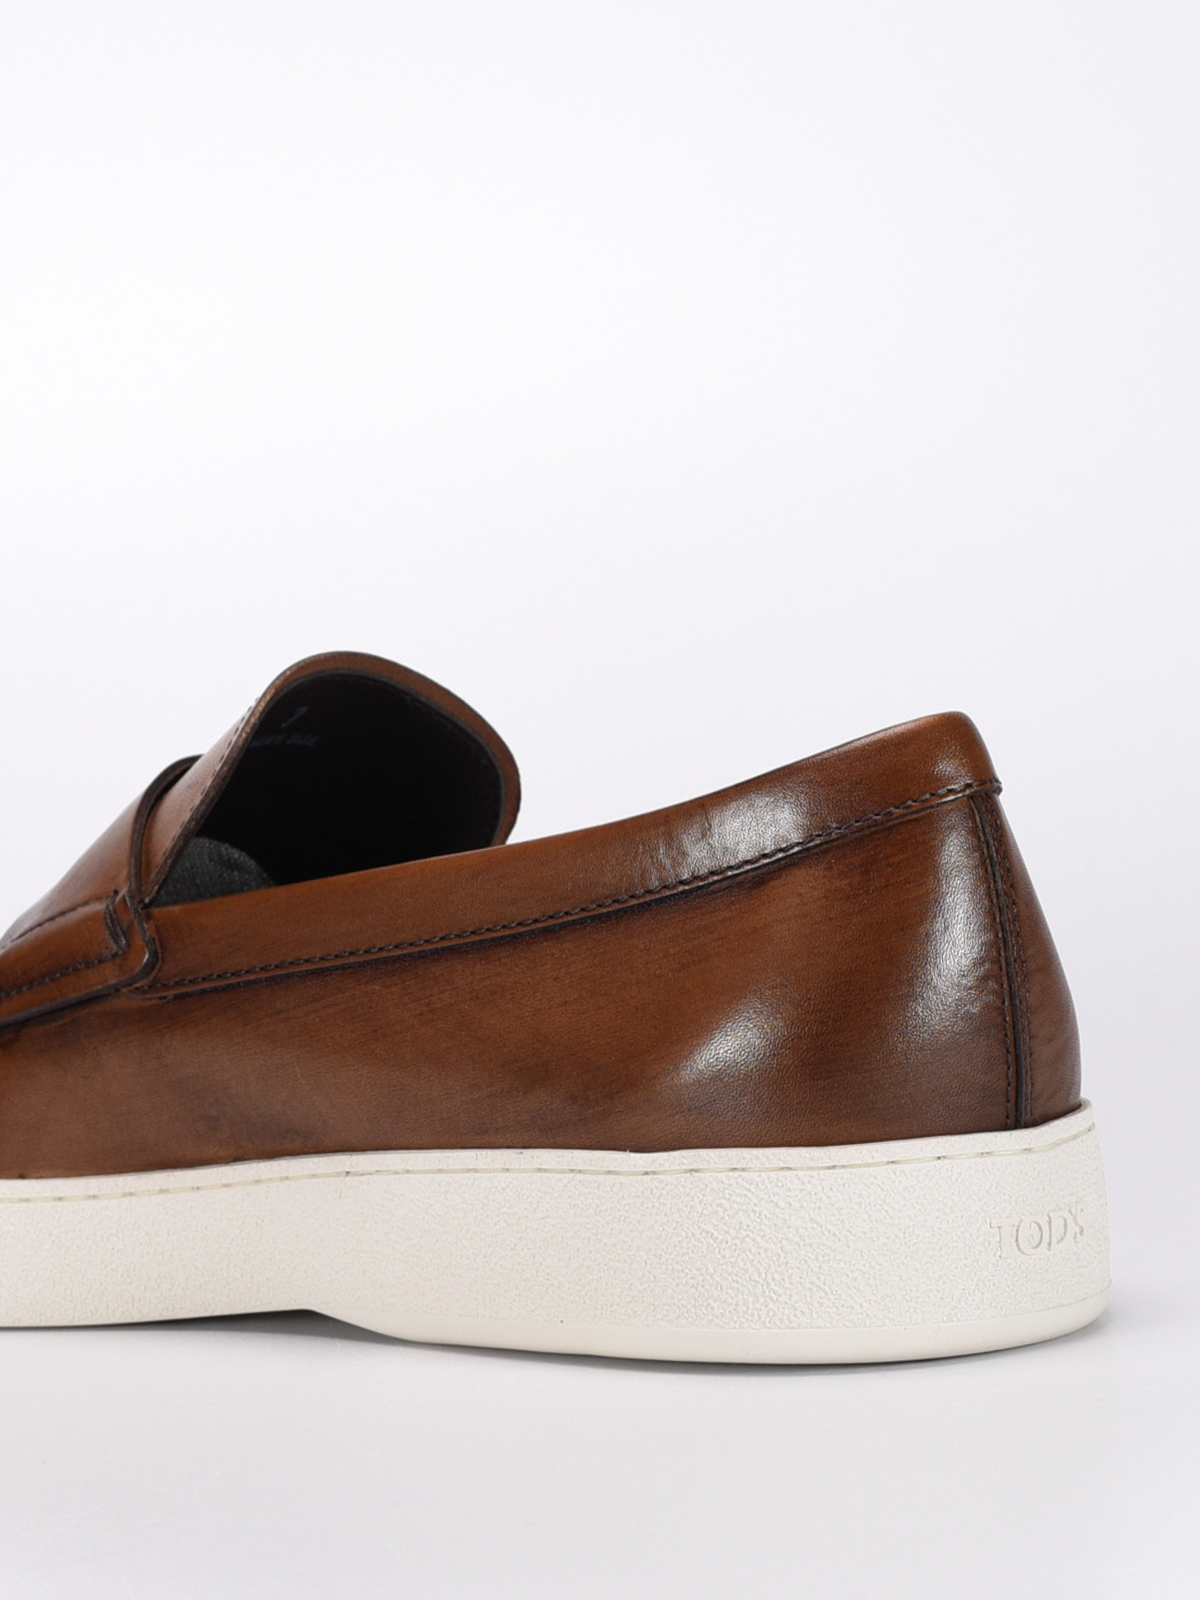 Vintage leather loafers - Loafers